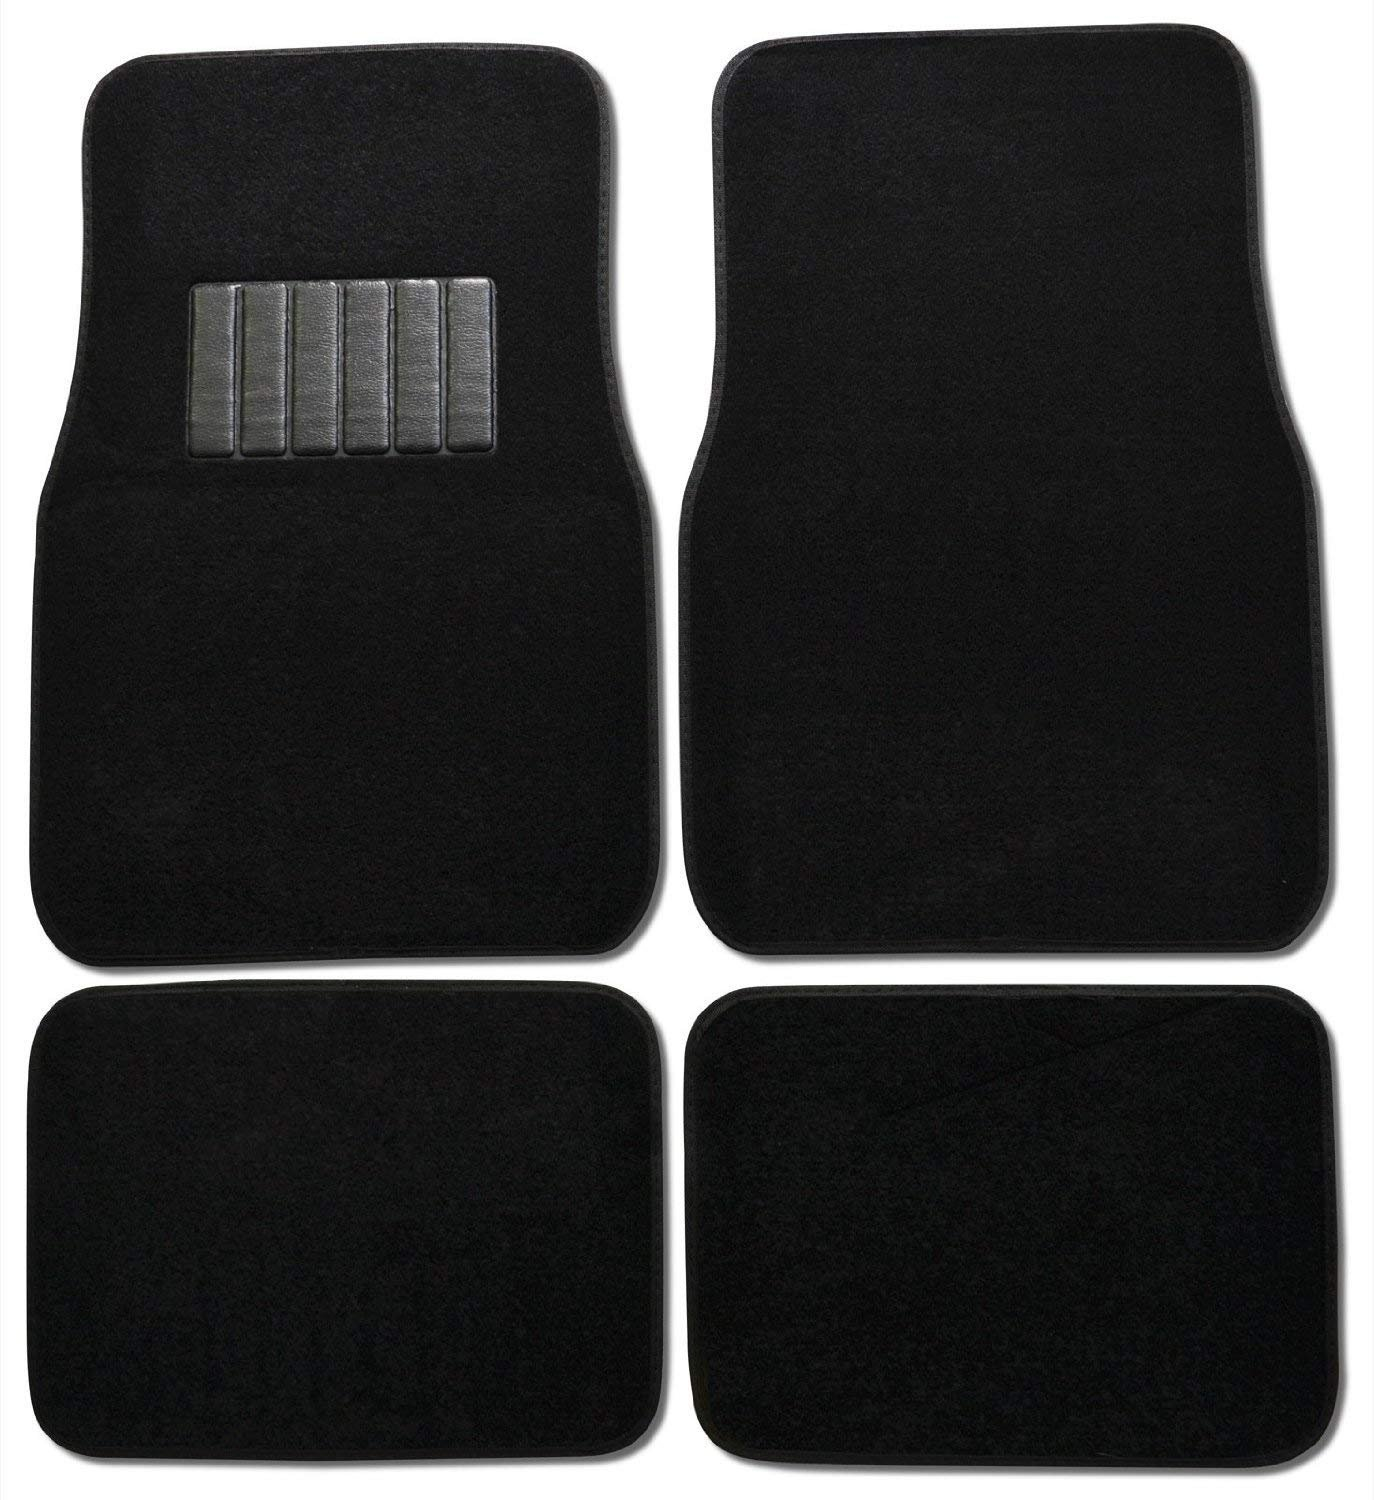 Premium Carpet 4PC Front & Rear Driver Passenger Floor Mats Cars Trucks Sedans SUVs (Black)